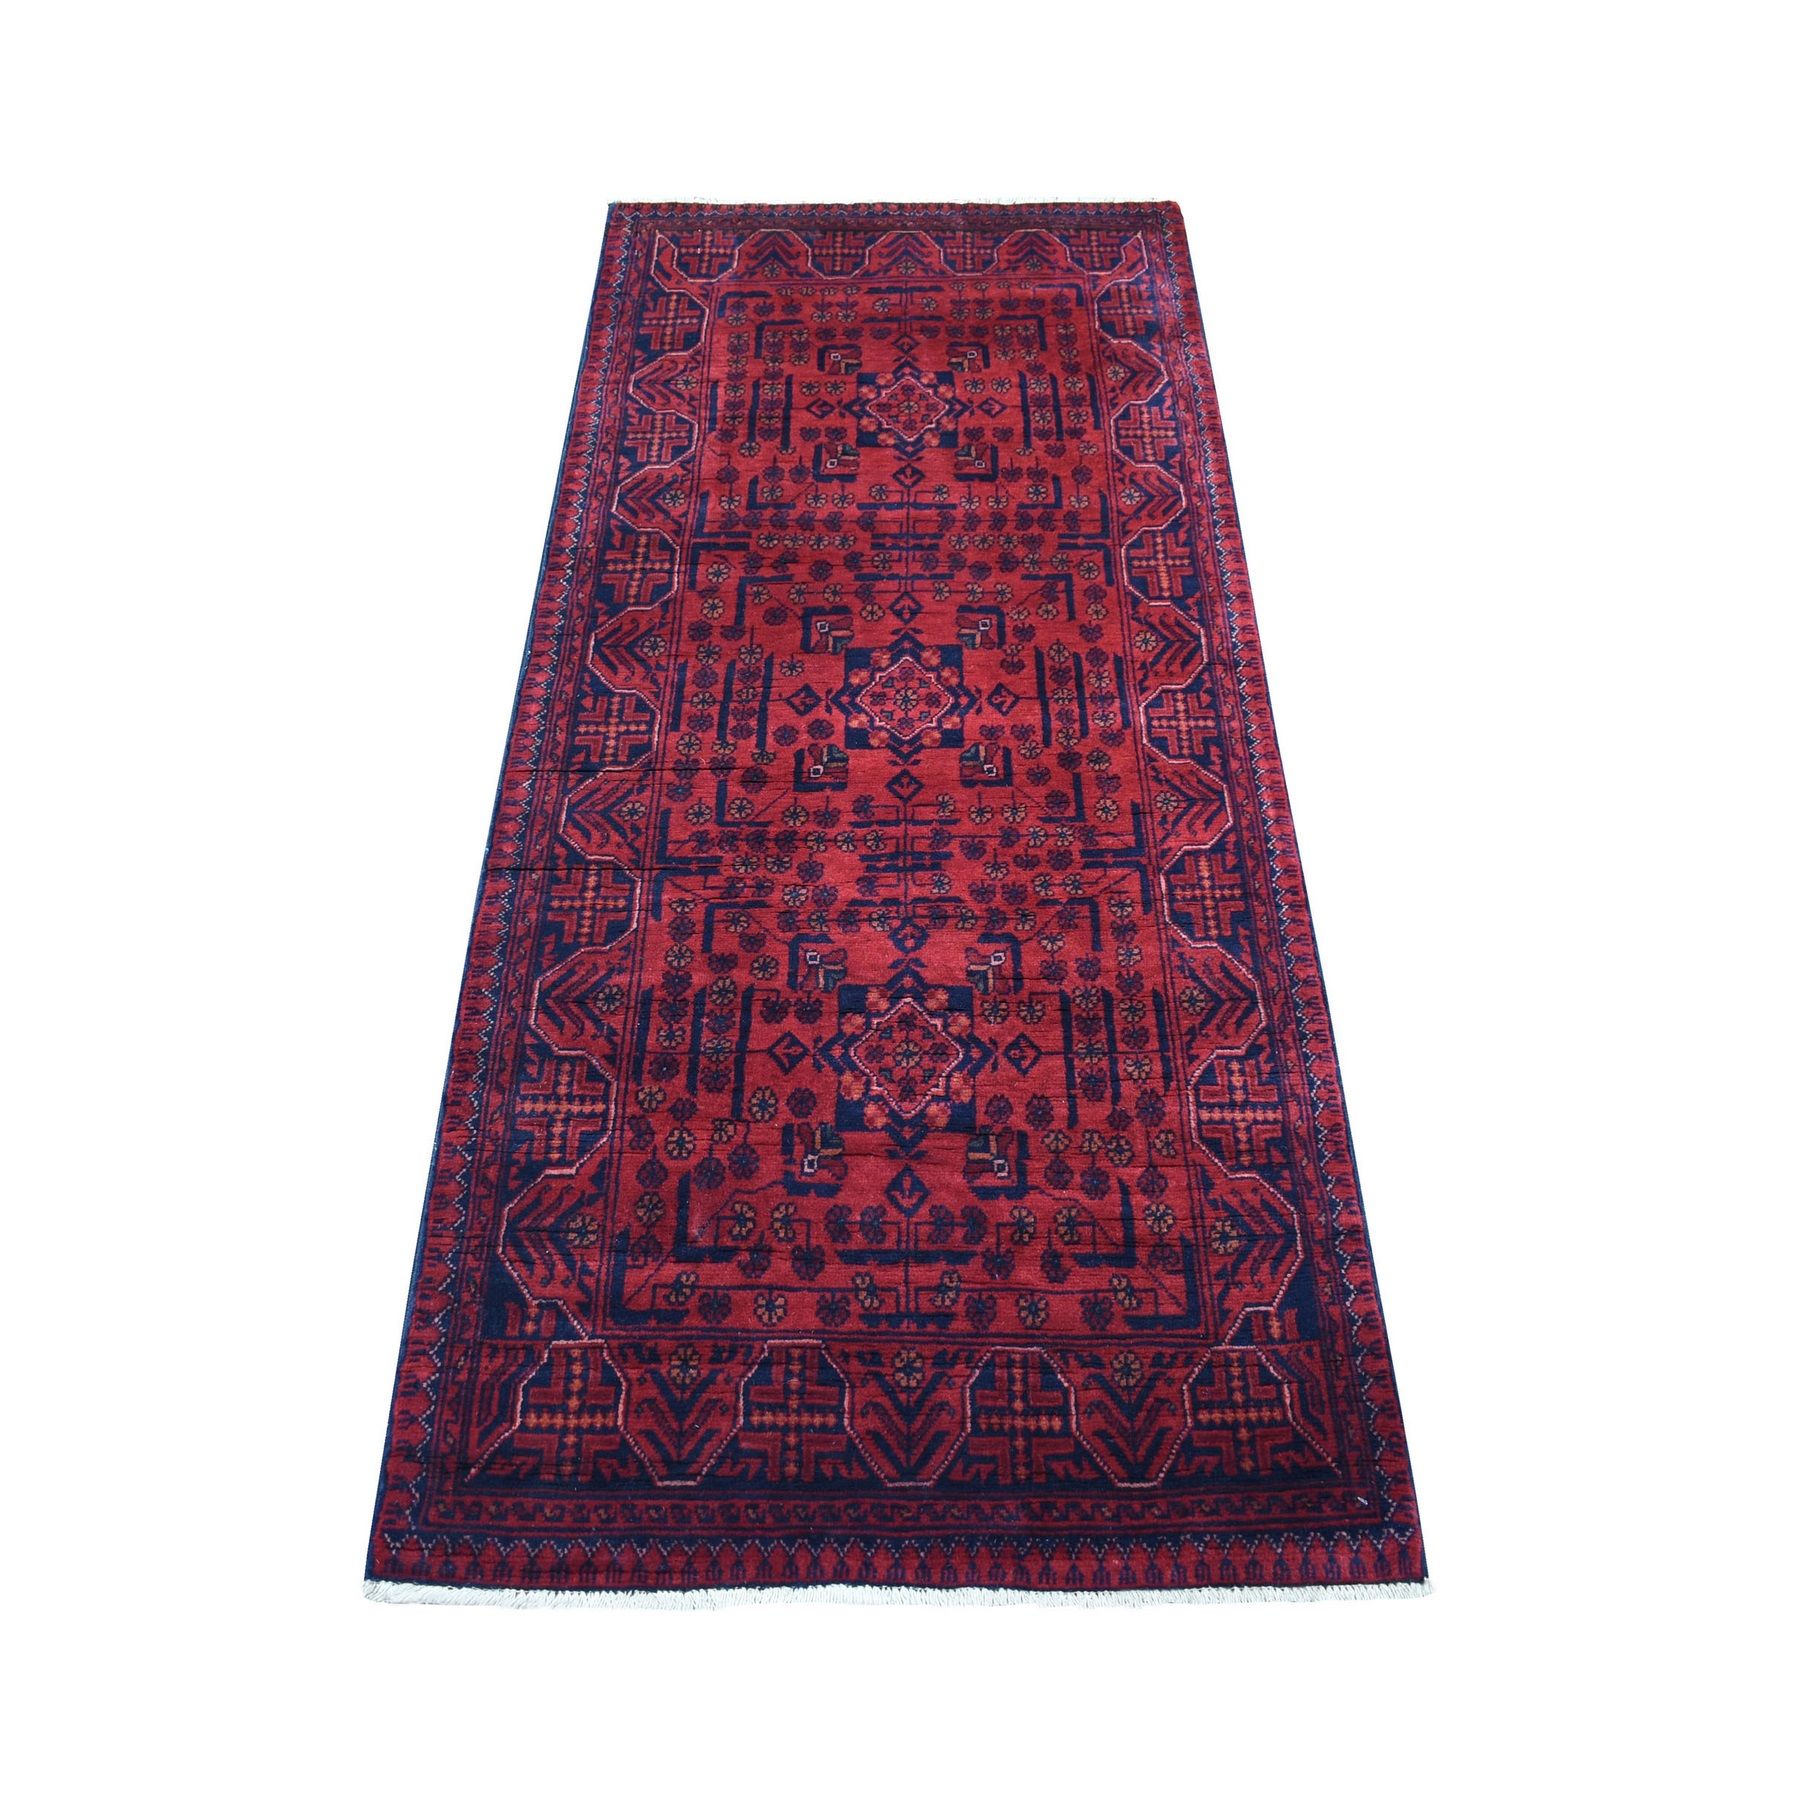 Nomadic And Village Collection Hand Knotted Red Rug No: 1136170